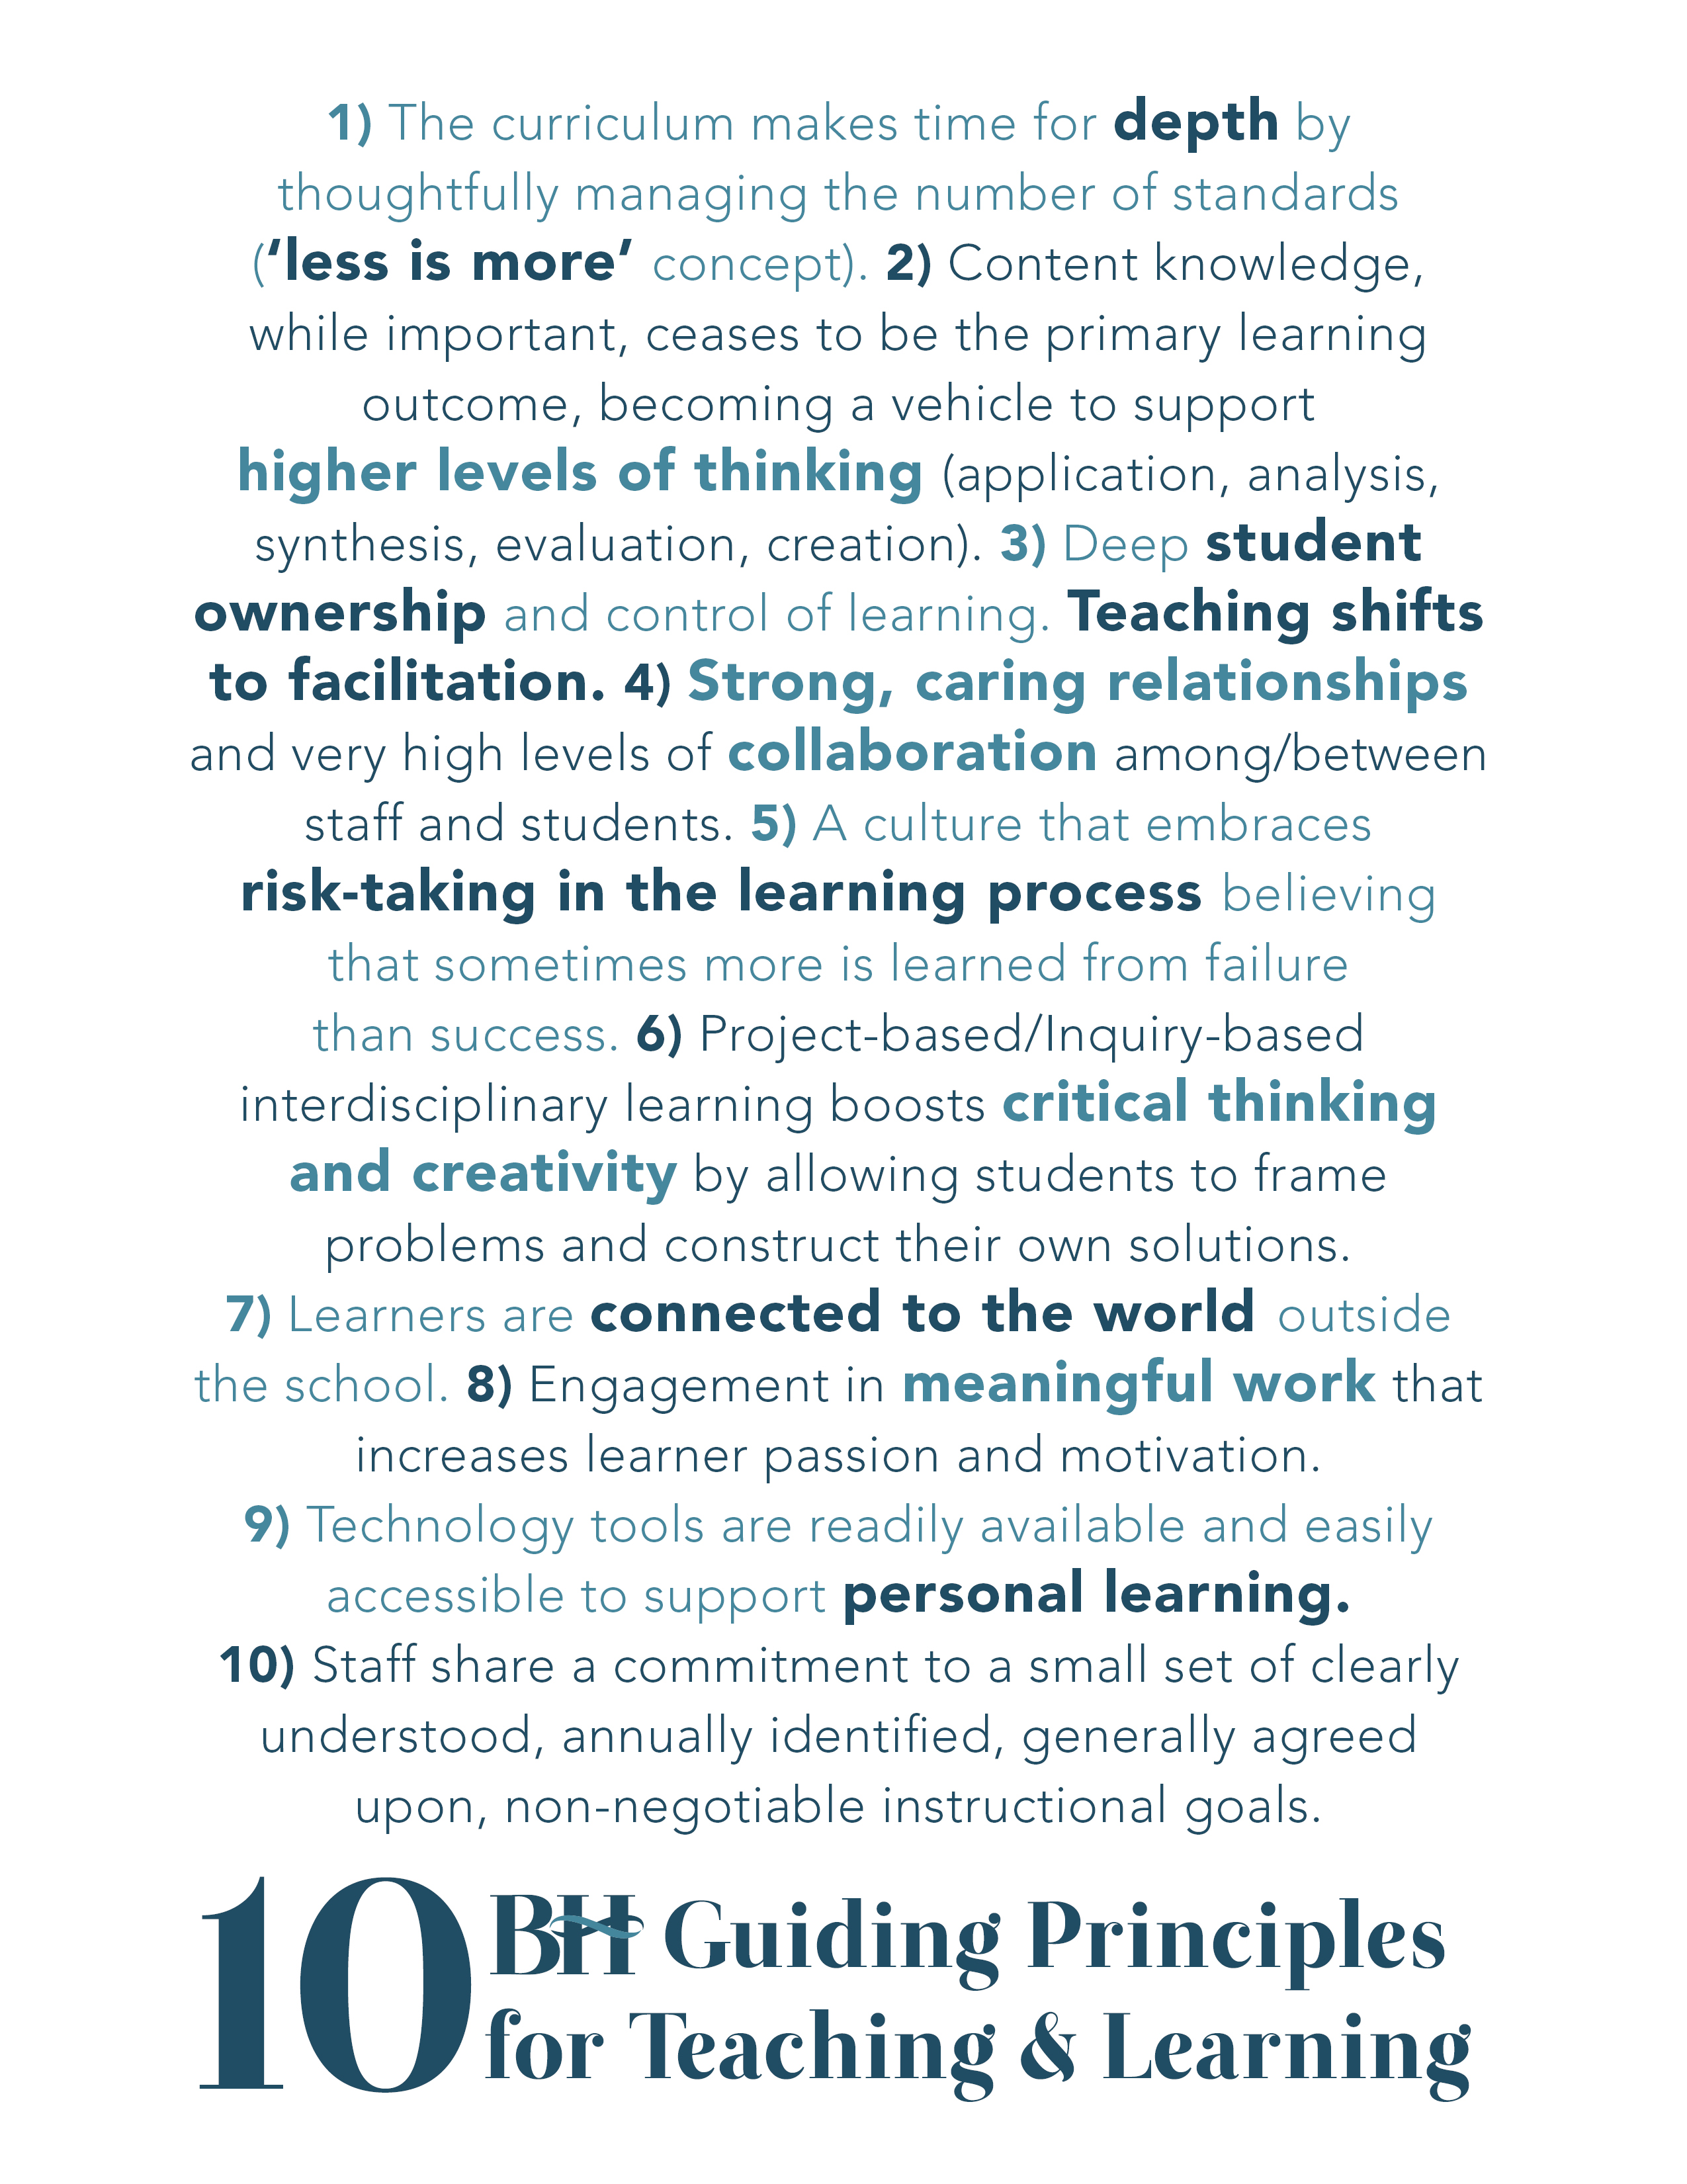 Ten Guiding Principles at one of the best schools in Michigan, Bloomfield Hills Schools